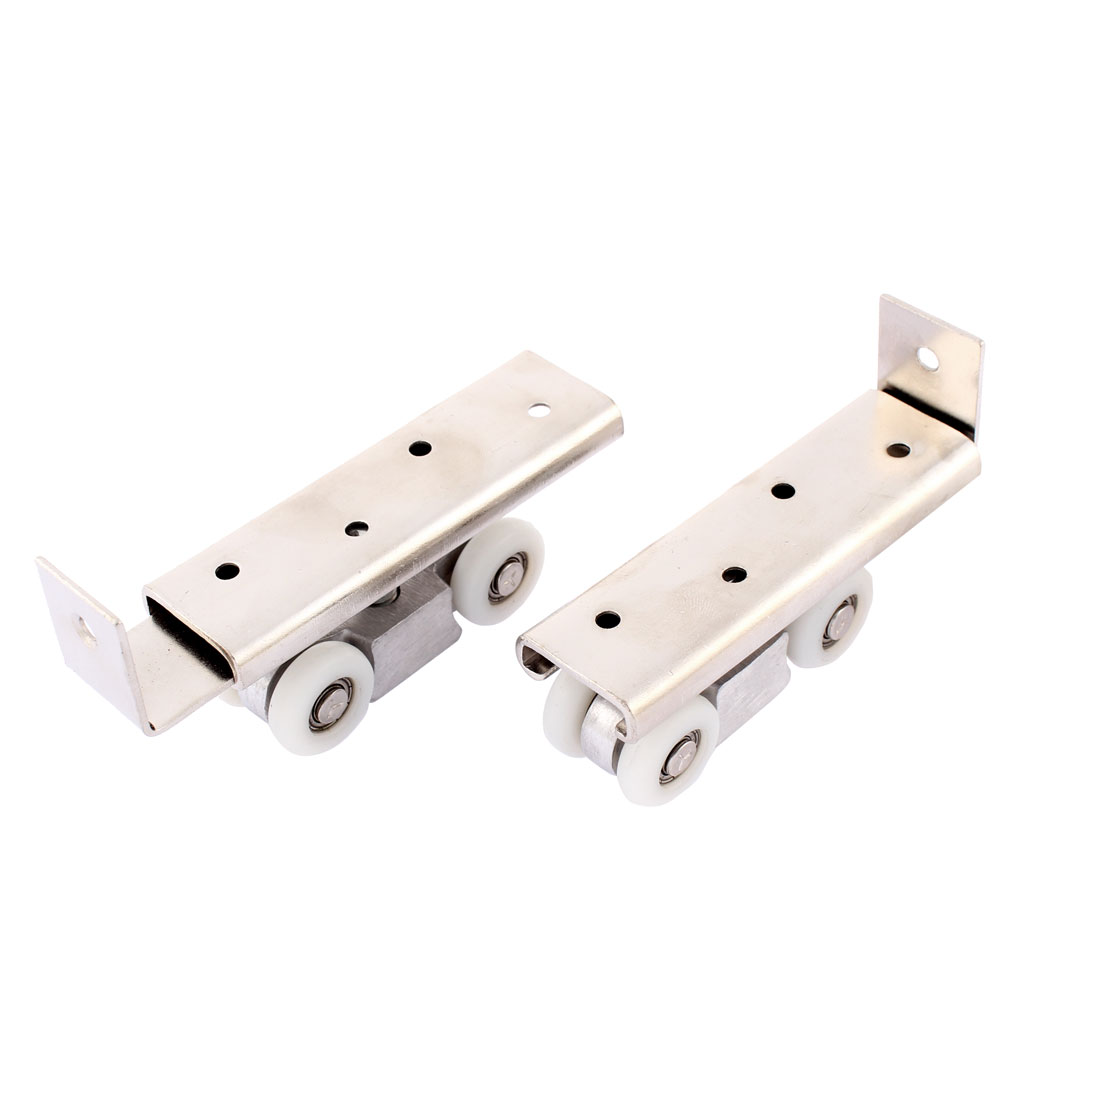 Bathroom Shower Window 4 Wheel Sliding Hanging Door Rollers White 2PCS